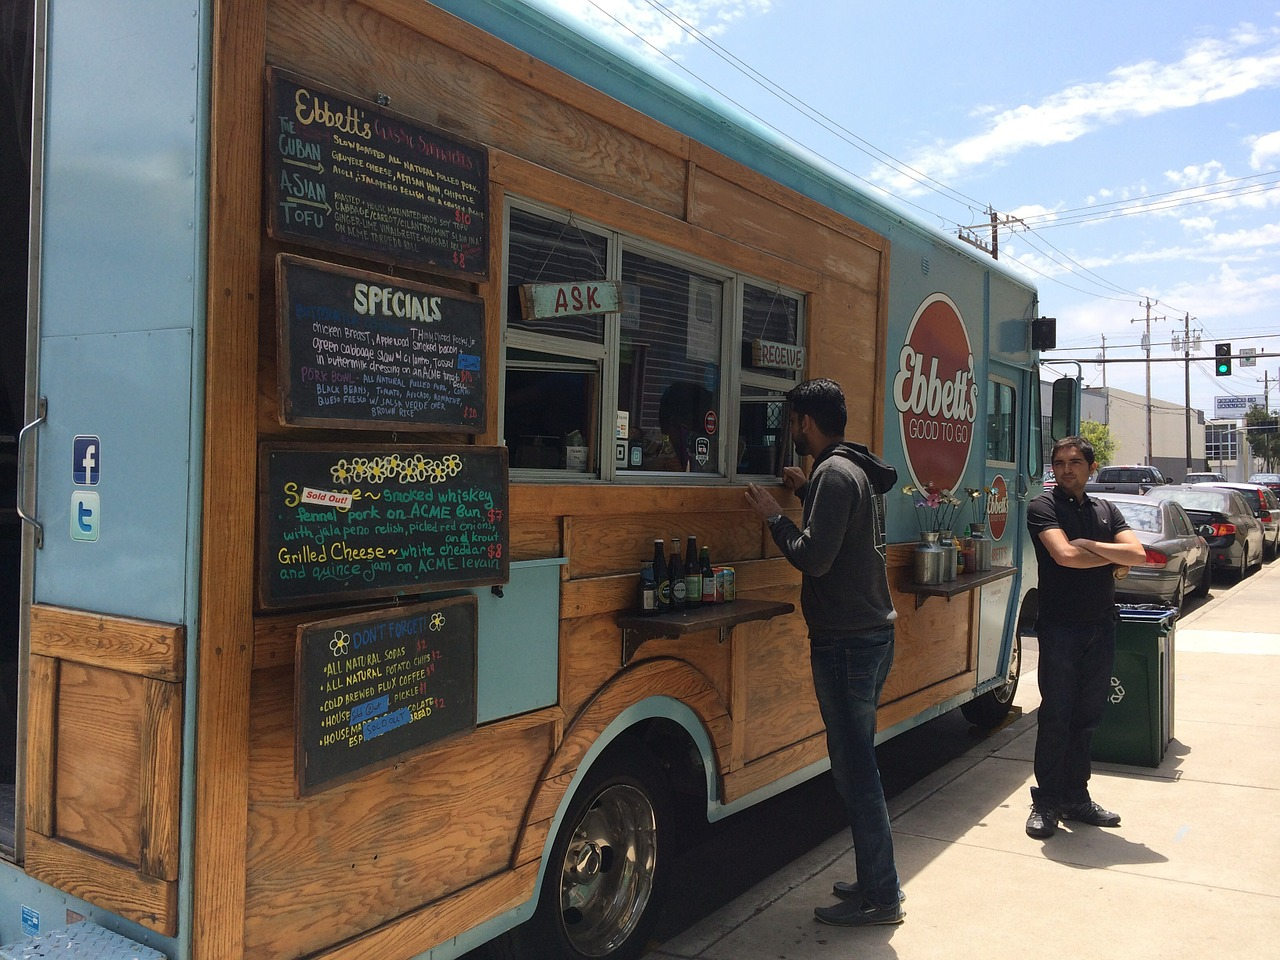 Food truck insurance coverage